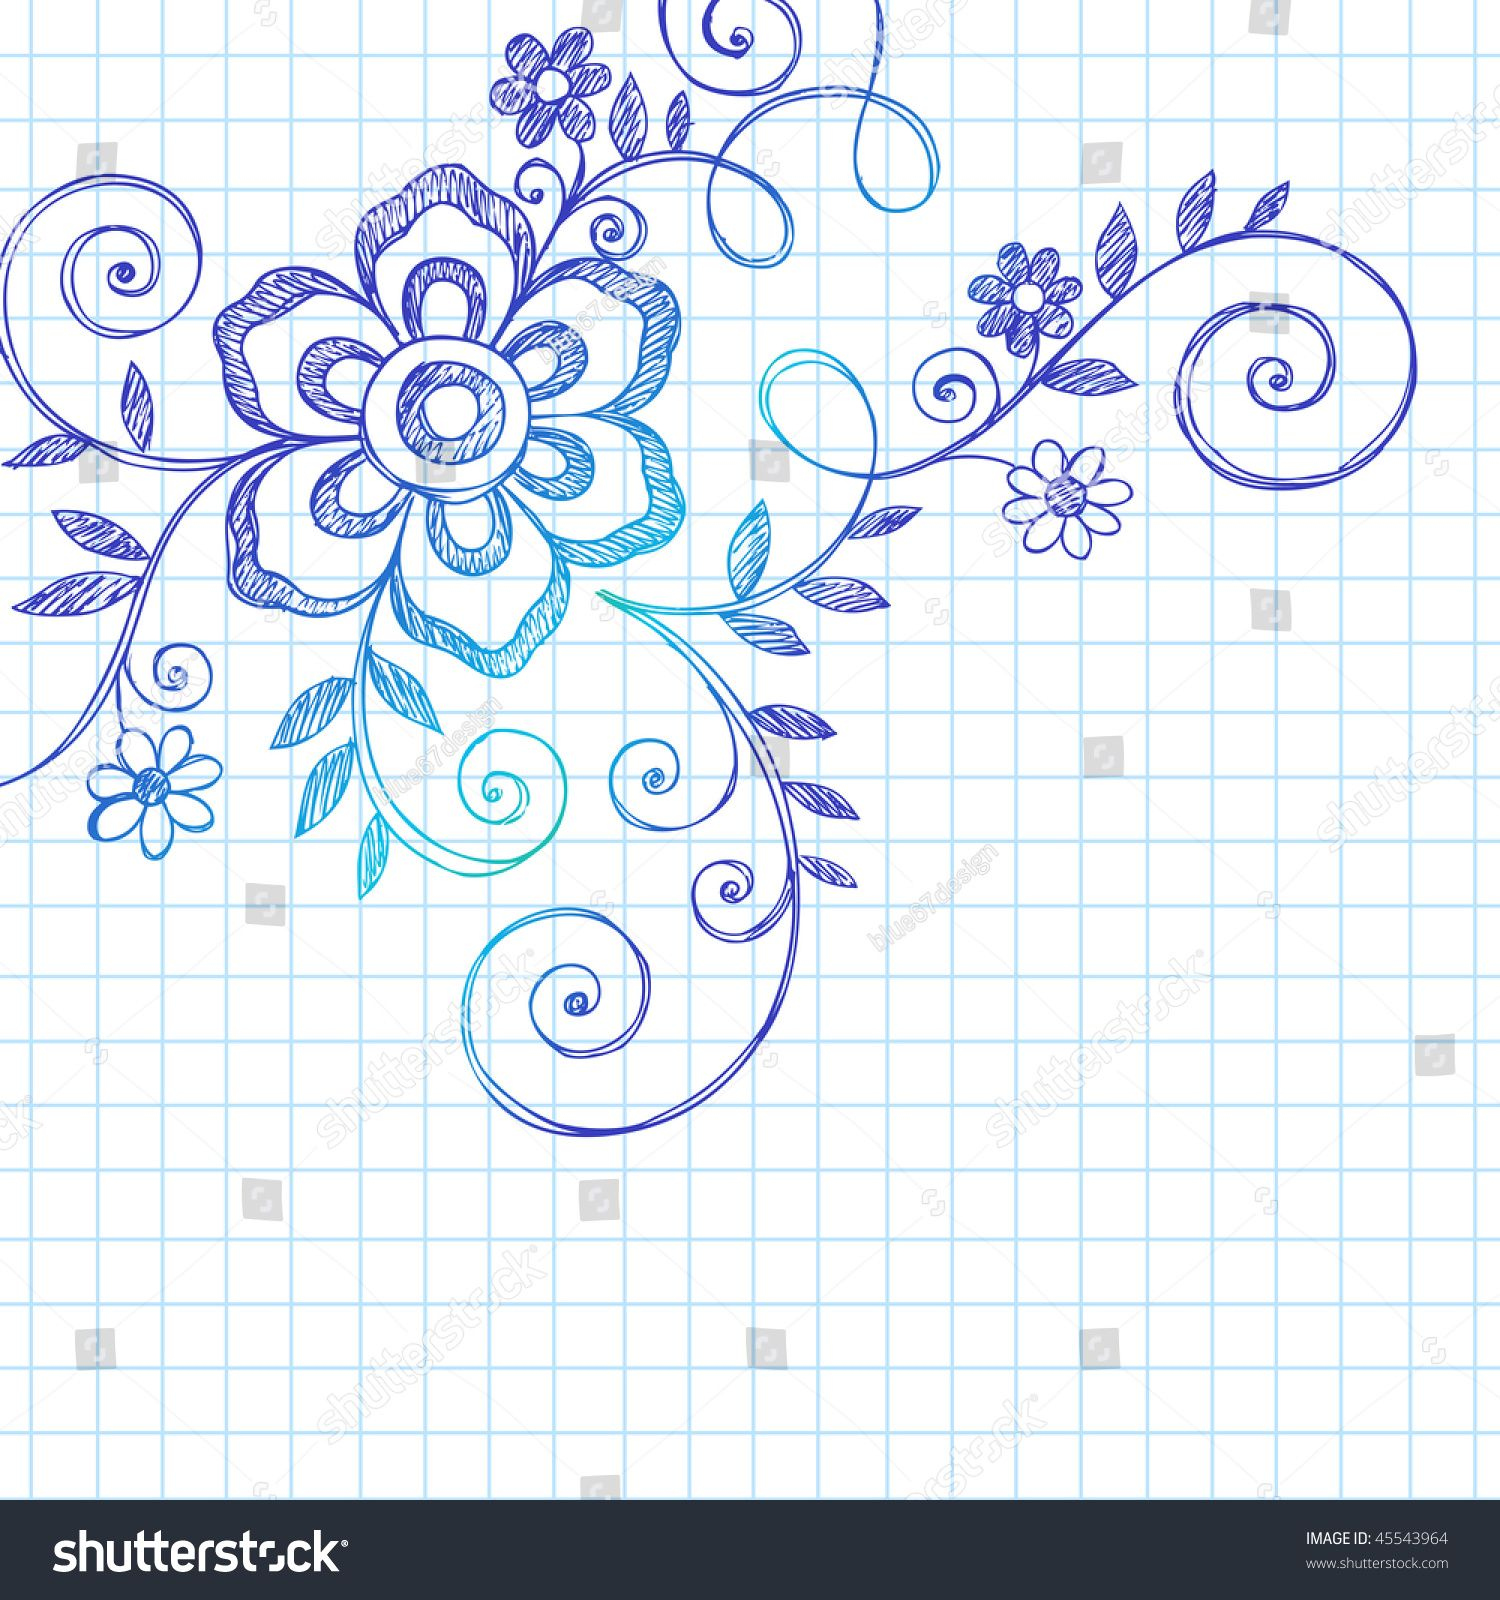 Hand Drawn Abstract Flower And Vines Sketchy Notebook